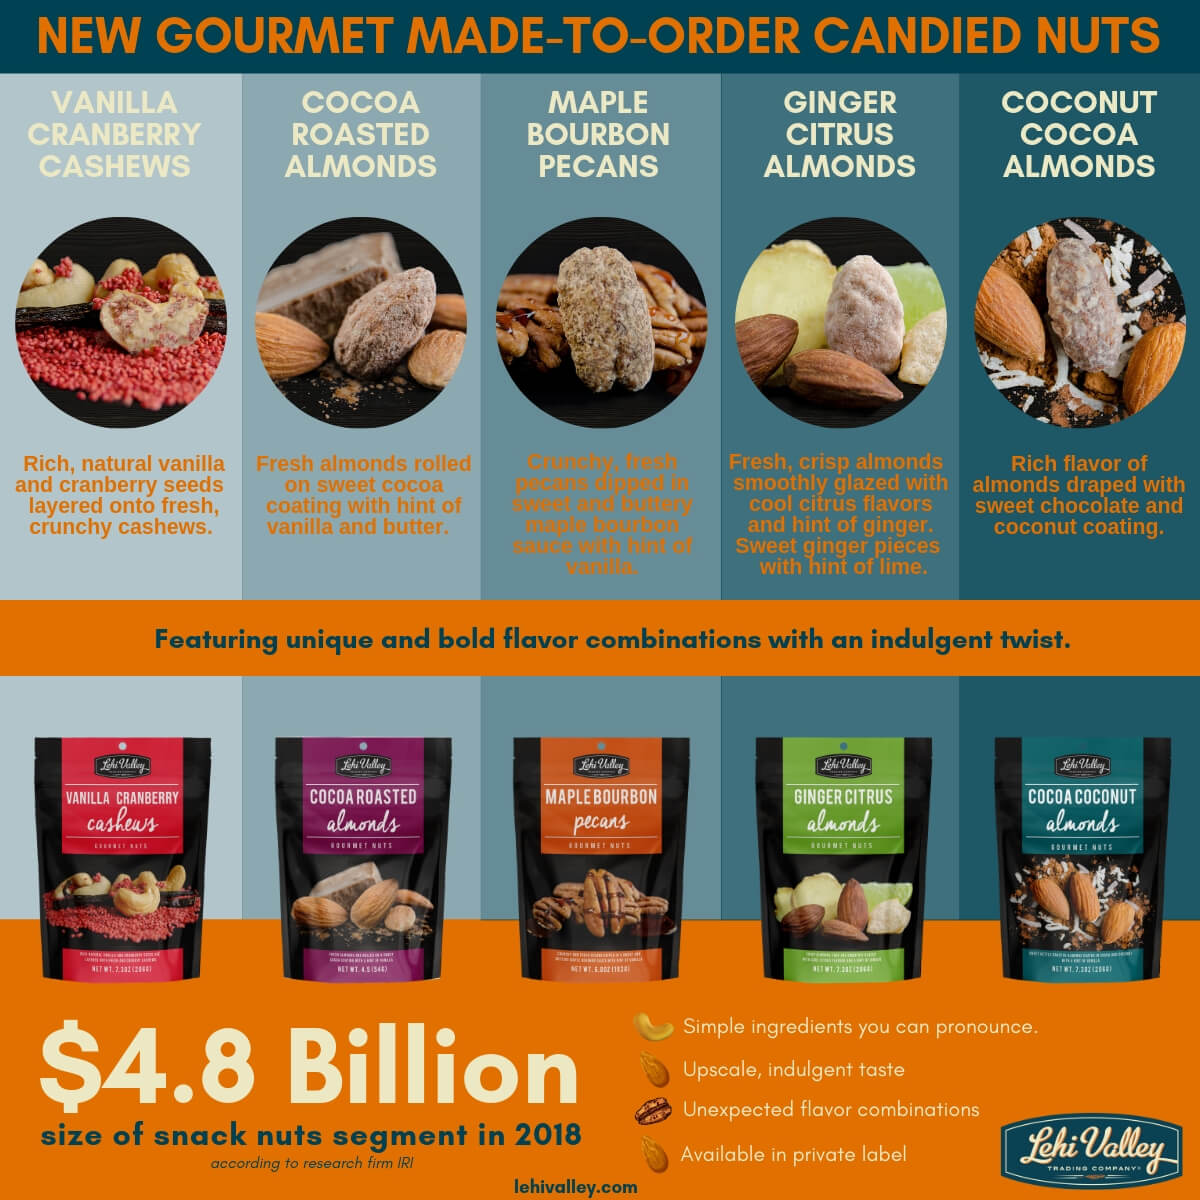 /images/blog/2019/07/Gourmet-Nuts-Infographic.jpg